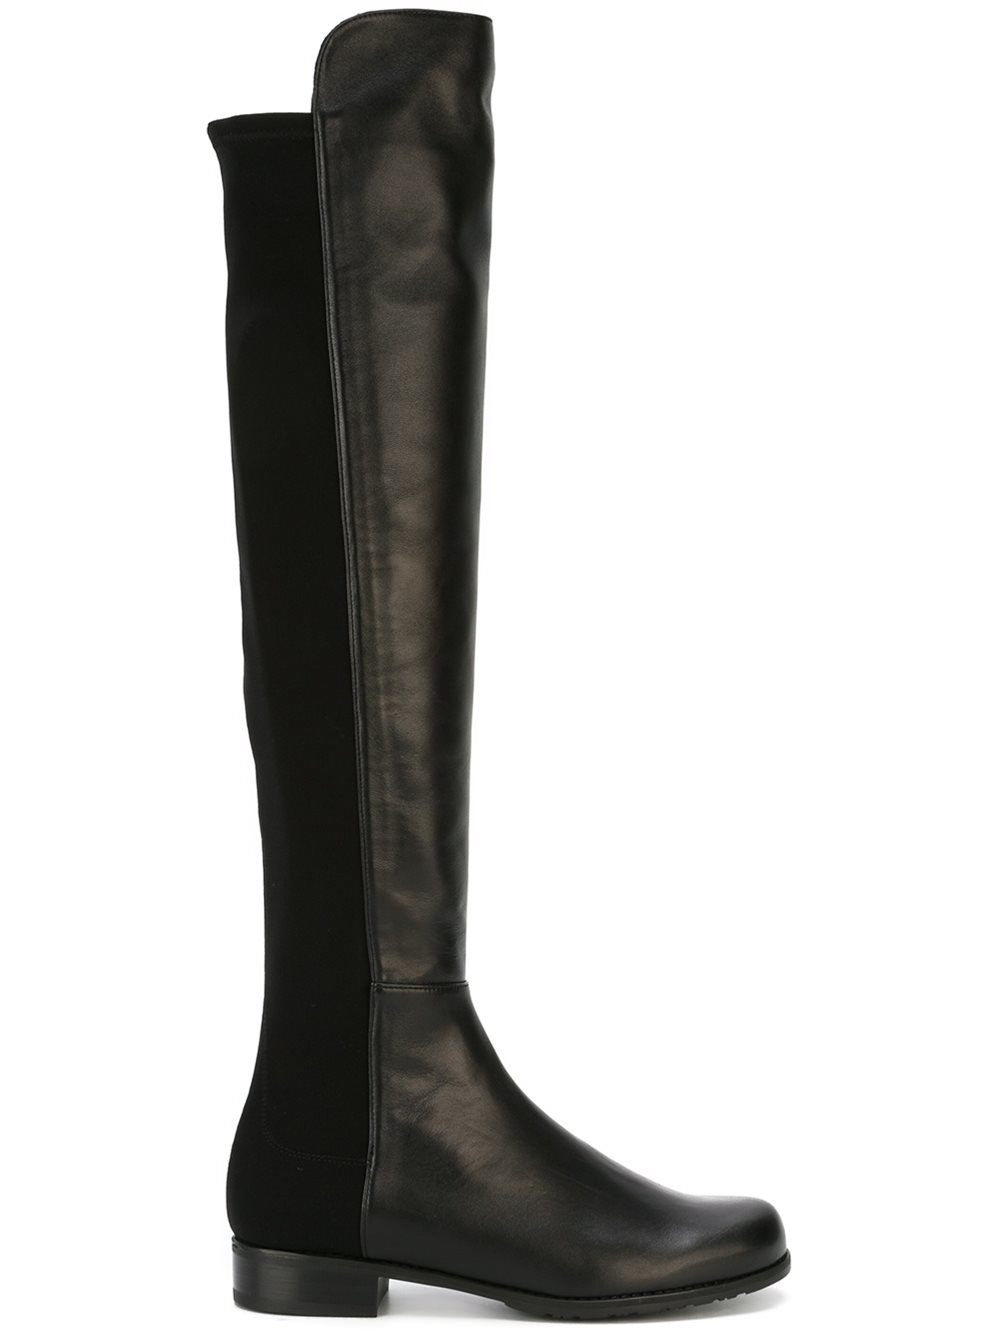 Find black knee length boots at ShopStyle. Shop the latest collection of black knee length boots from the most popular stores - all in one place.